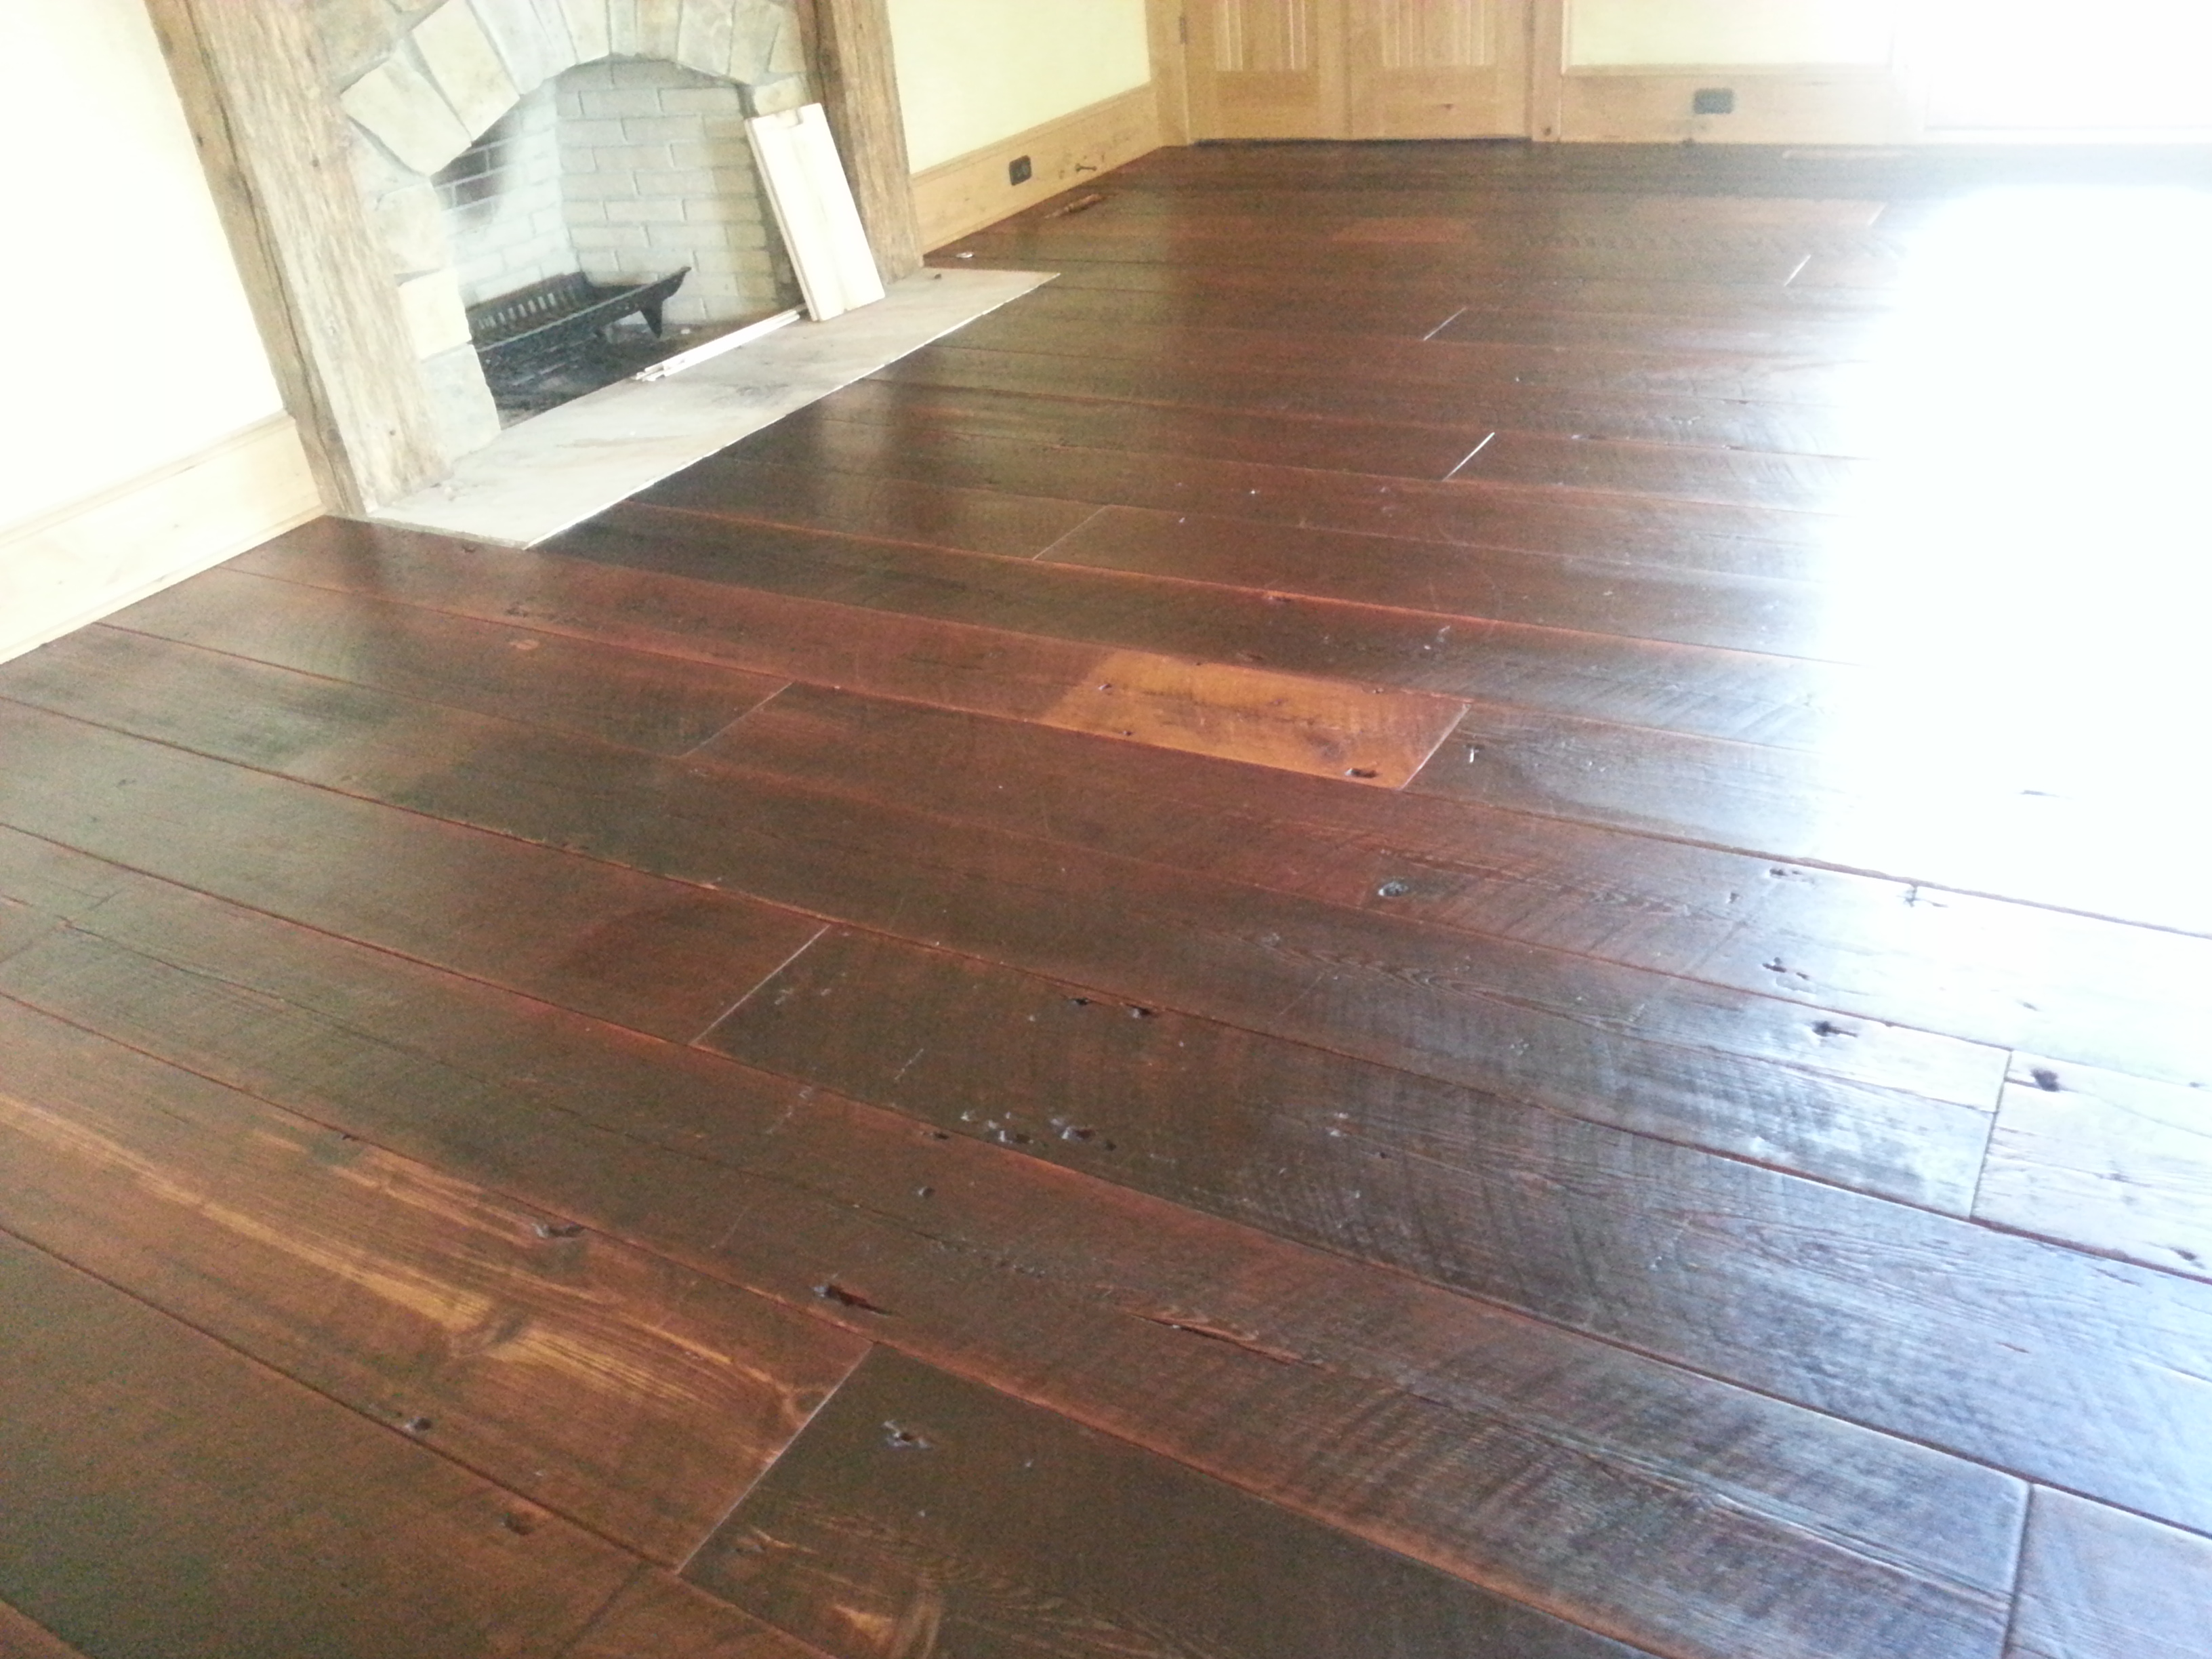 Hardwood flooring panies near me carpet vidalondon for Hardwood flooring nearby